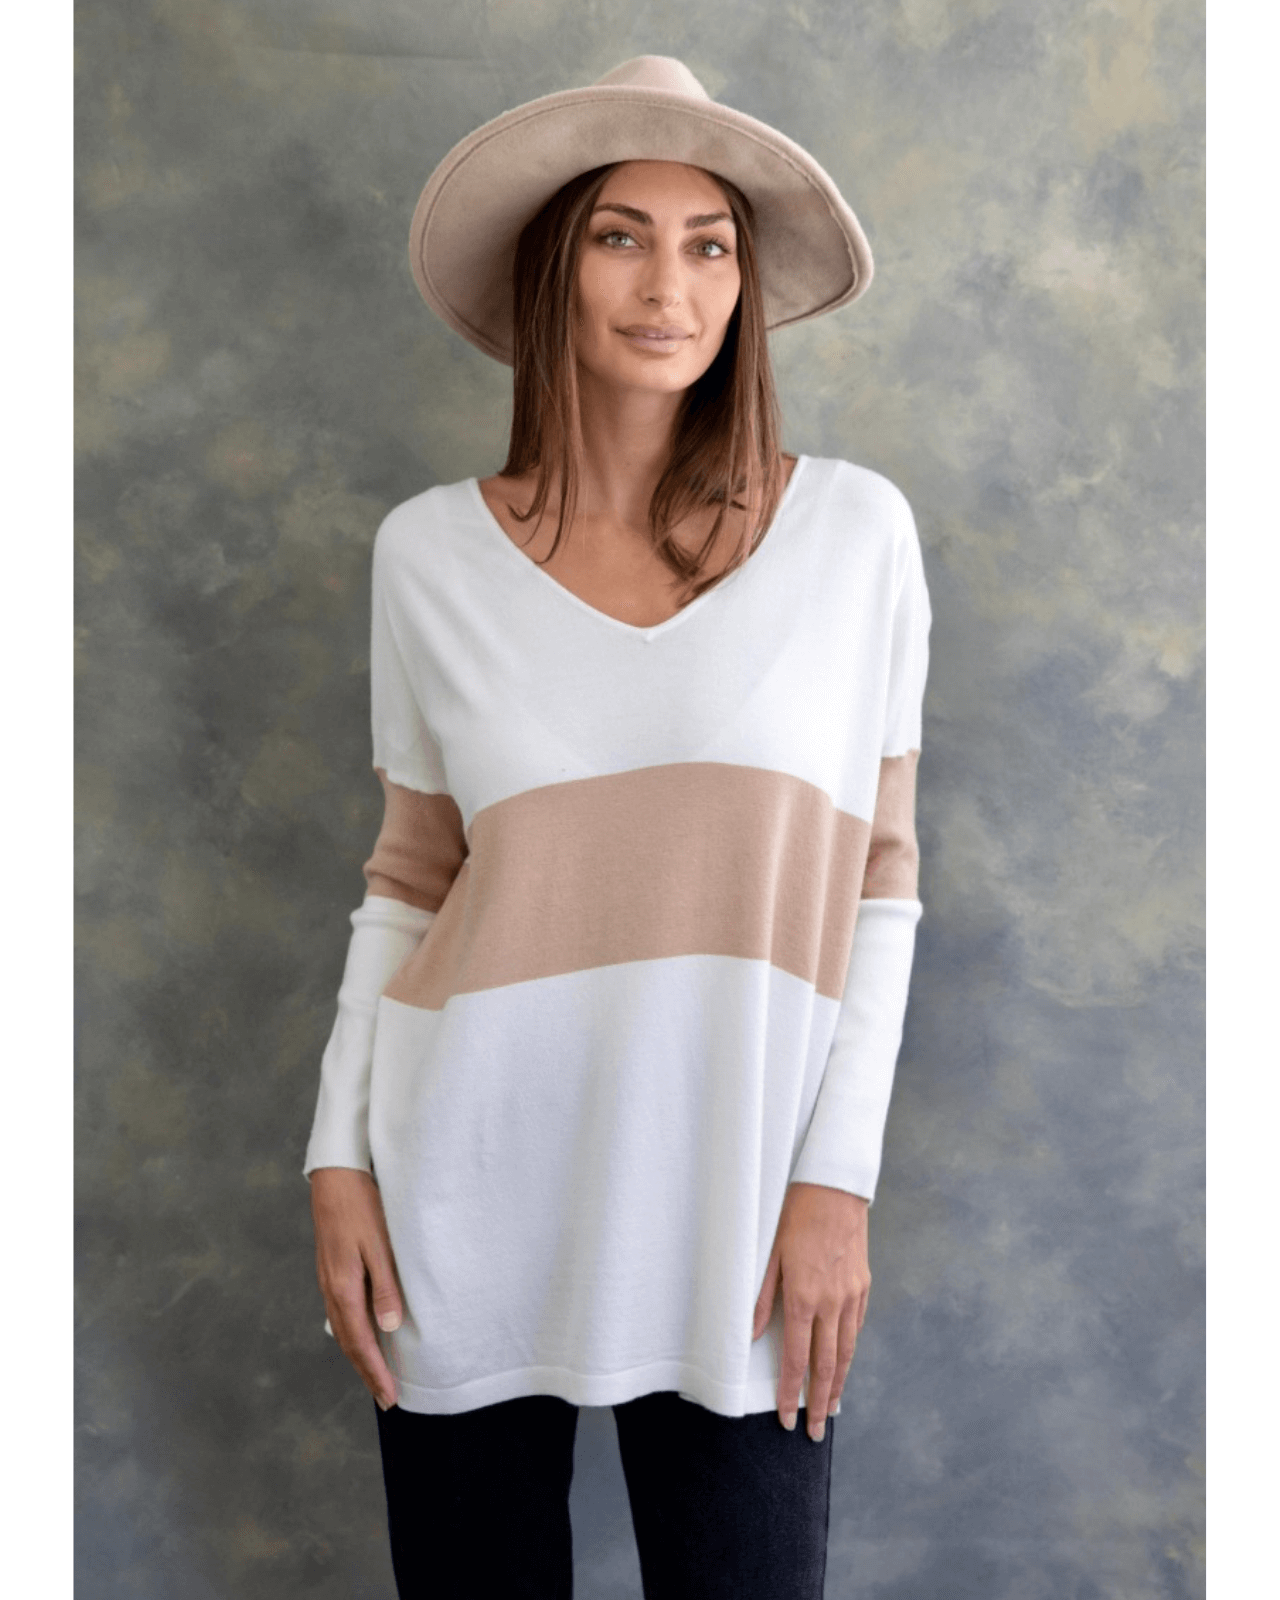 Larissa Knit Top - White and Tan